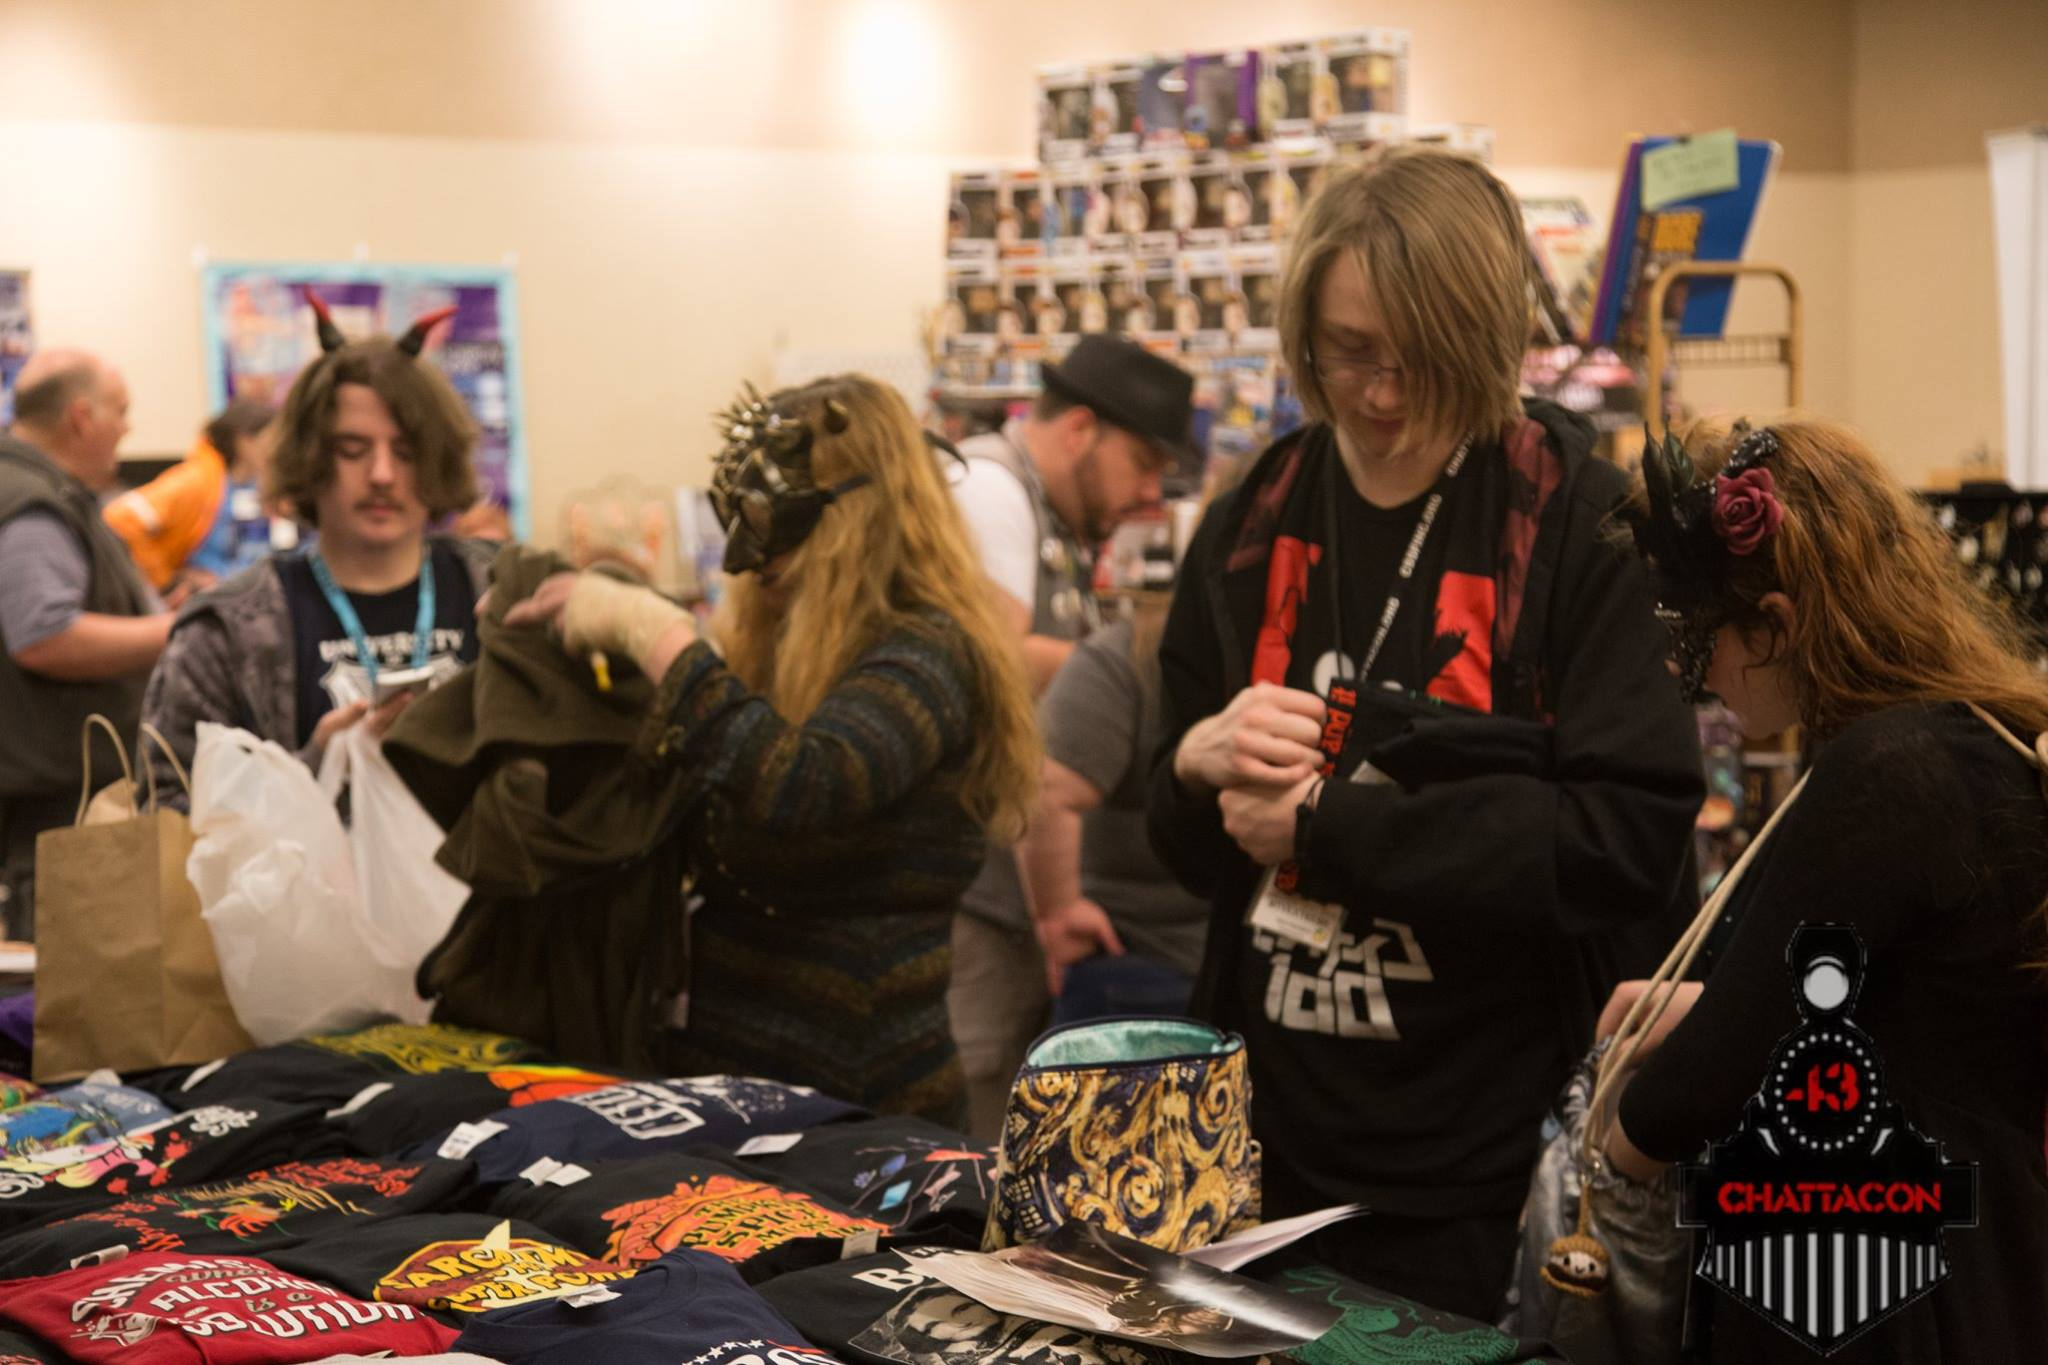 Chattacon Dealers' Room